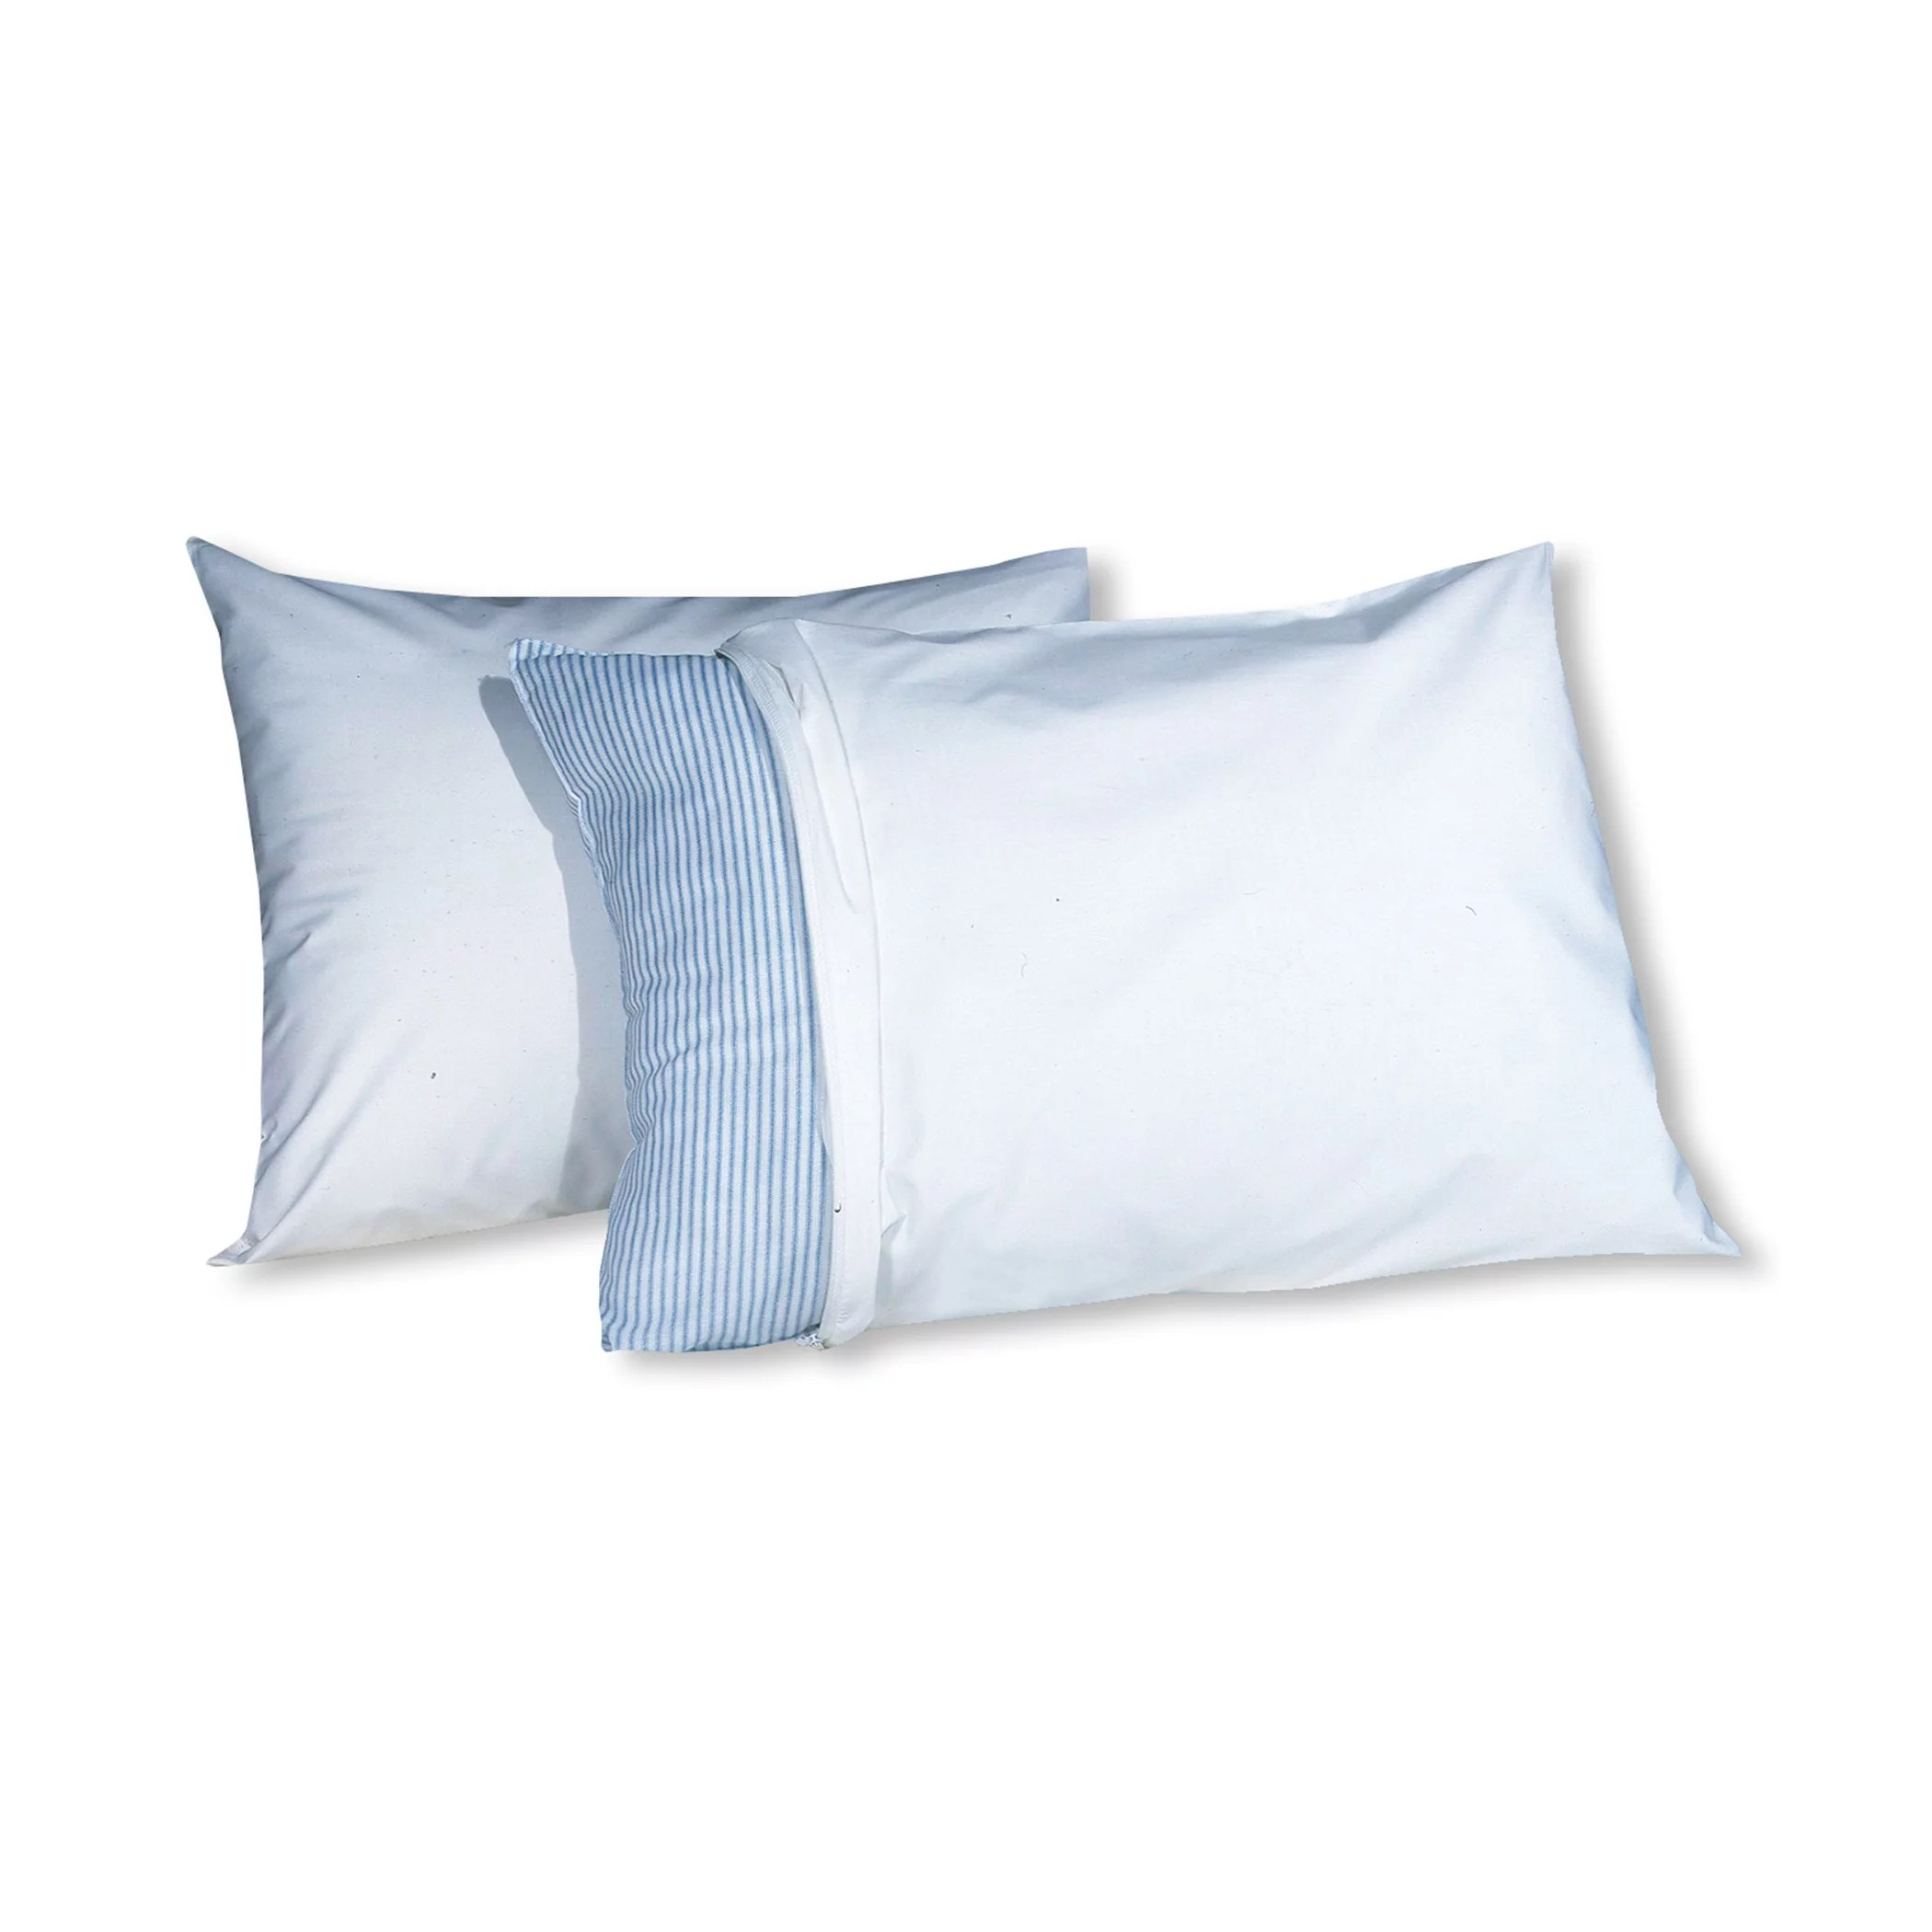 pillow guard allergy relief pillow protectors 2 pack